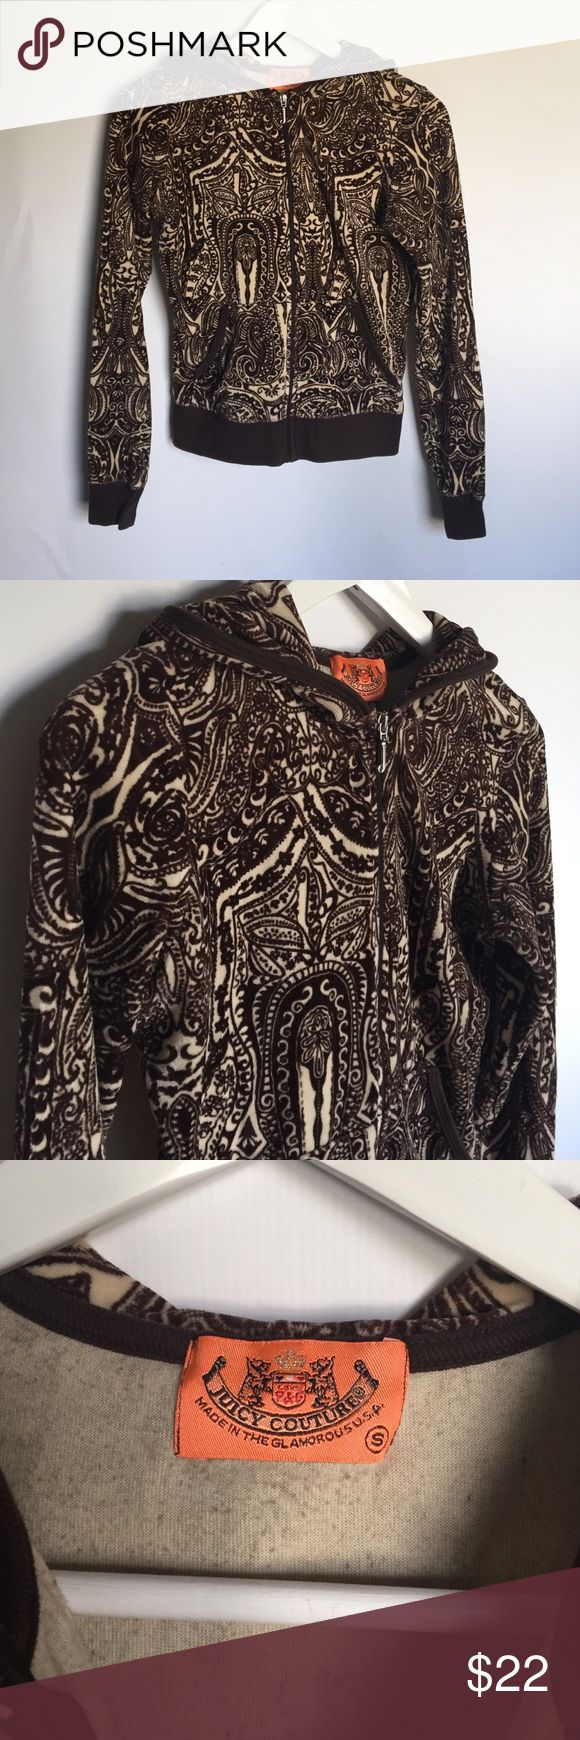 "Juicy Couture Brown and Beige Zip Up Hoodie sz S You are viewing a Juicy Couture dark brown and beige zip up hoodie track jacket in a size small. It features a beautiful paisley pattern and a silver ""J"" zip up. It is in great used condition with no stains or holes. Juicy Couture Tops Sweatshirts & Hoodies"